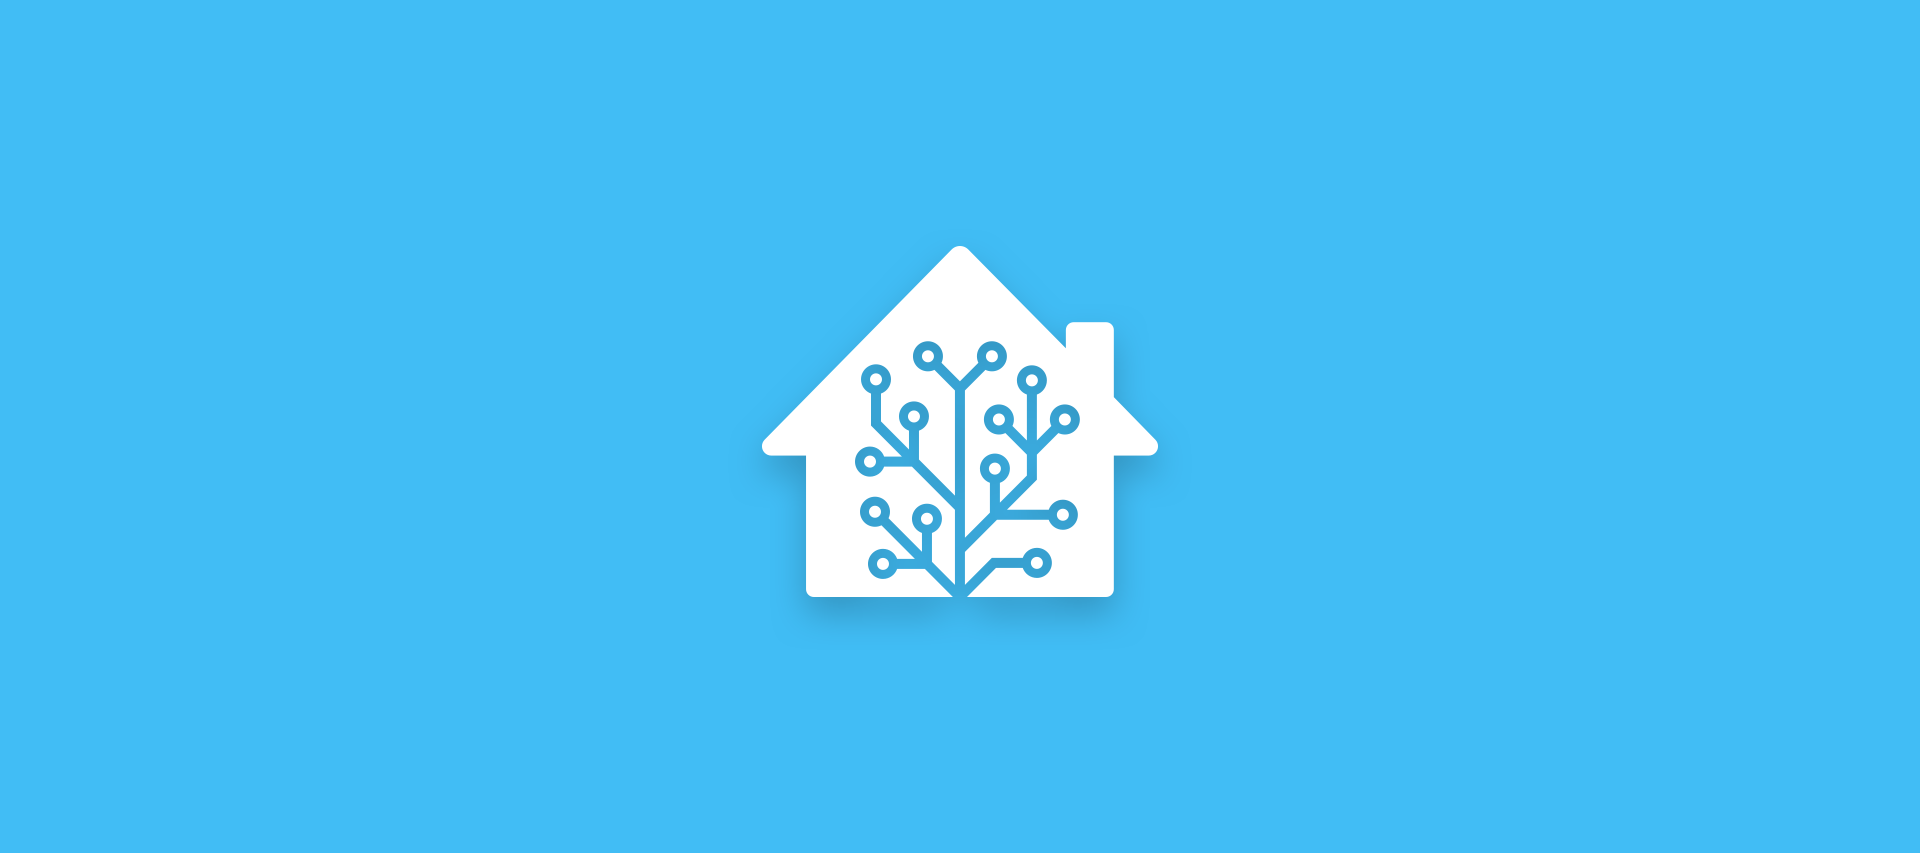 Overriding Home Assistant components